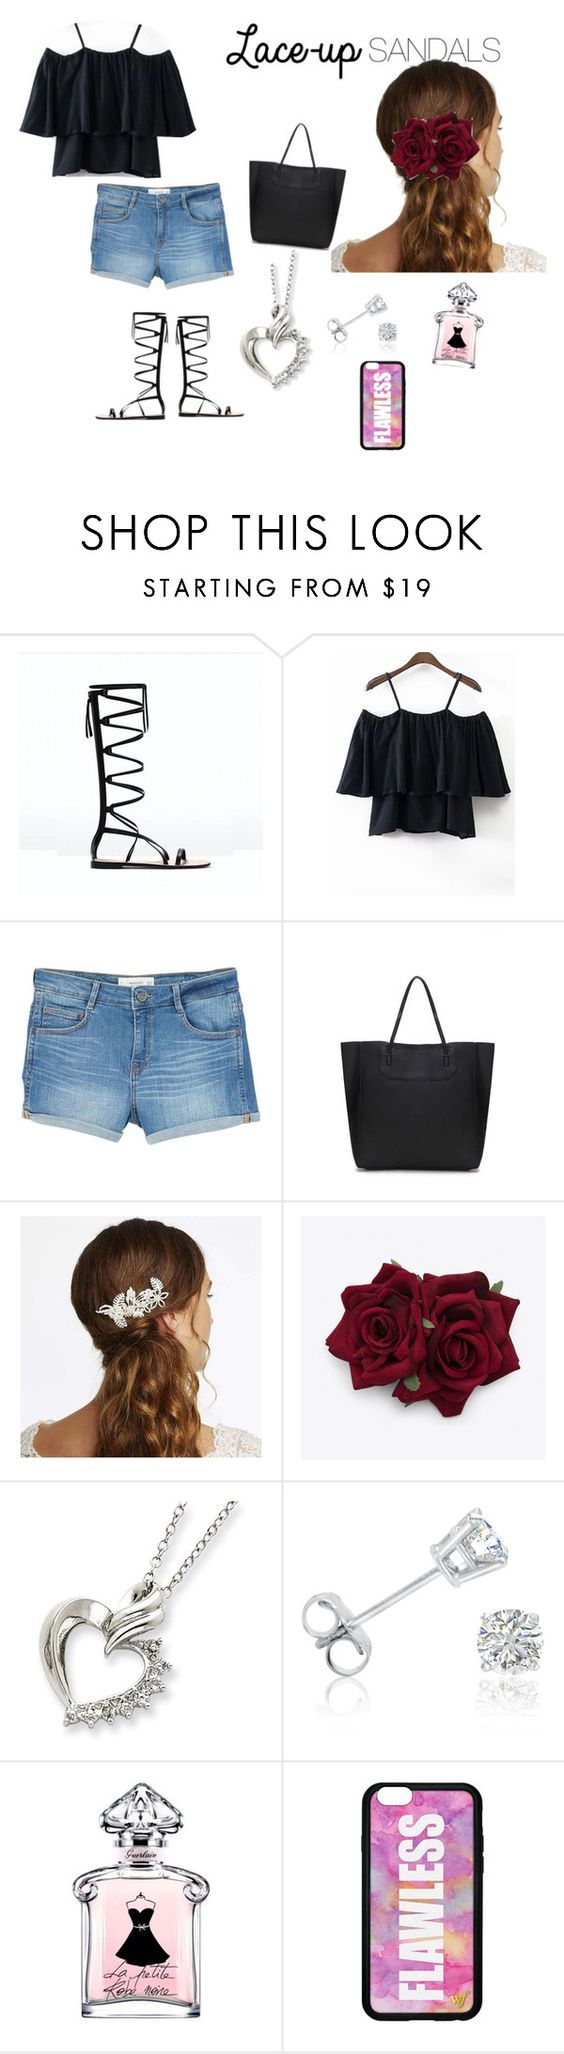 """""""Lace Up Sandals"""" by krystalene-anciulis ❤ liked on Polyvore featuring MANGO, Alan Hannah, Amanda Rose Collection, Forever 21, contestentry, laceupsandals and PVStyleInsiderContest"""